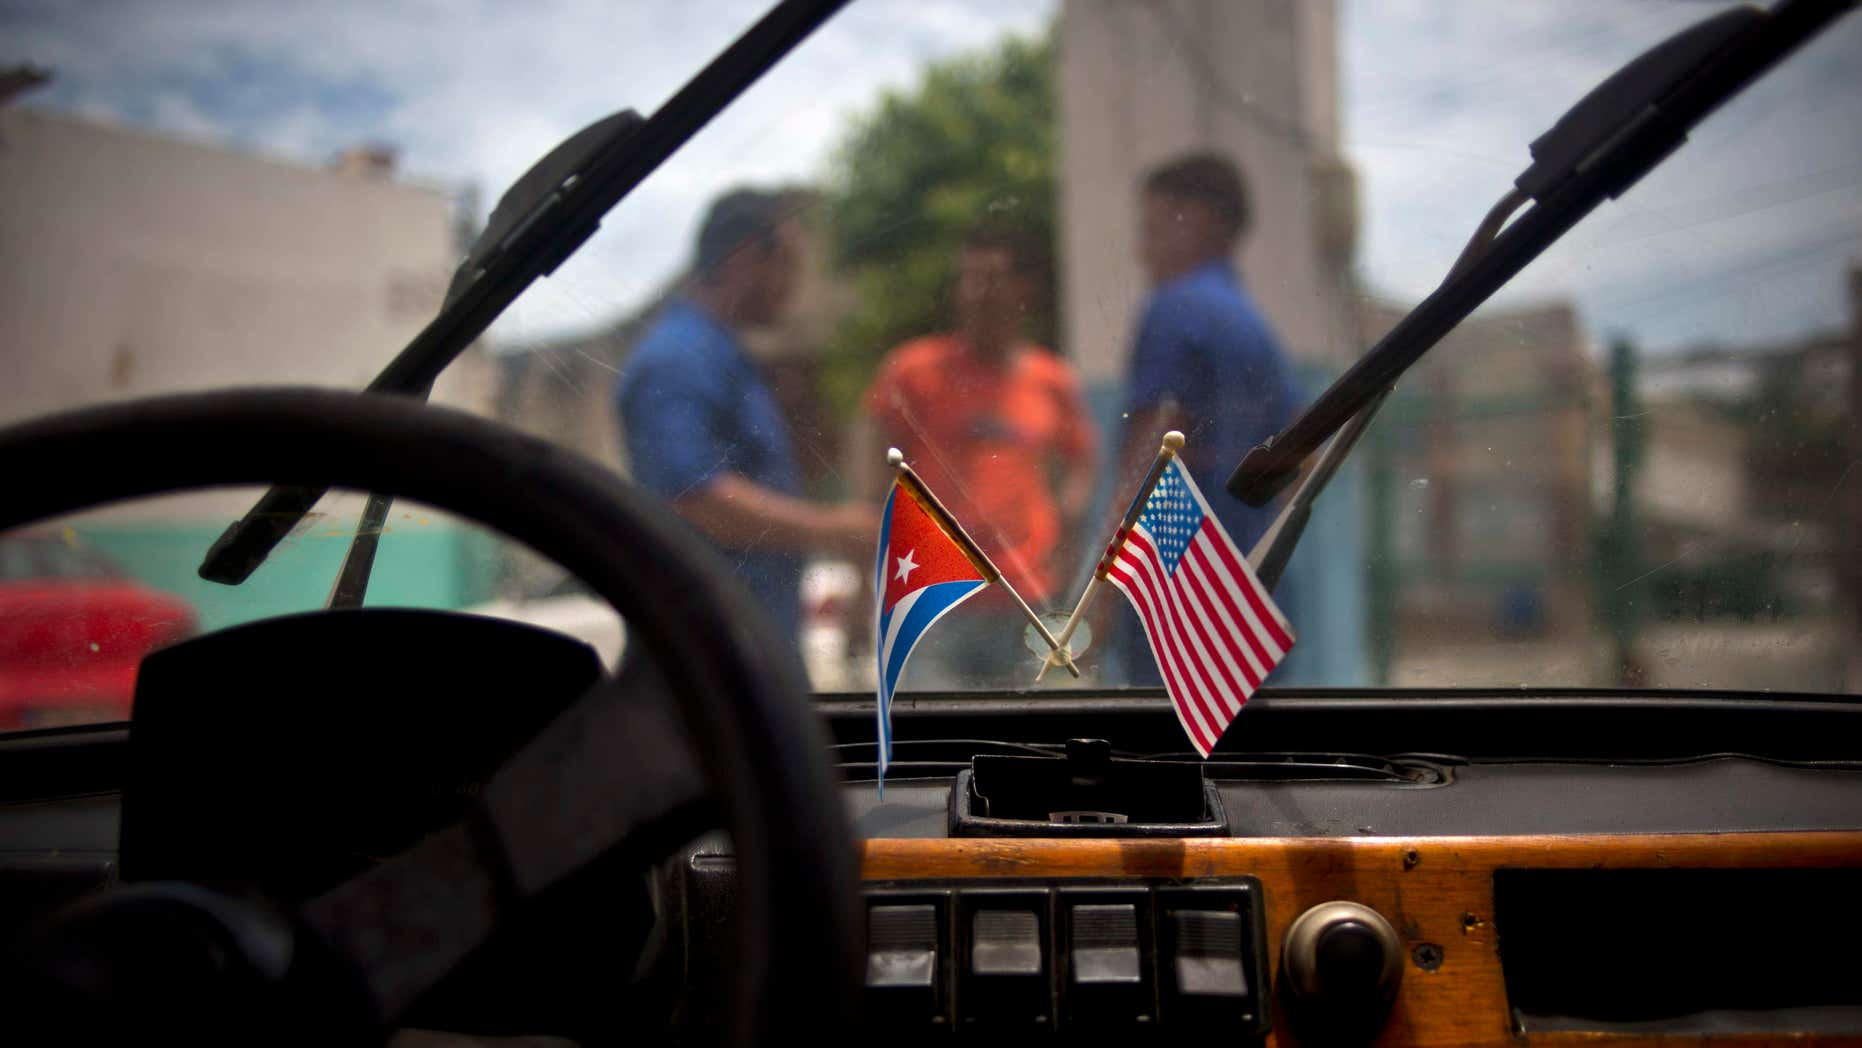 Aug. 10, 2016: A Cuban and a U.S. flag hang on the windshield of a car in a garage in Havana, Cuba.